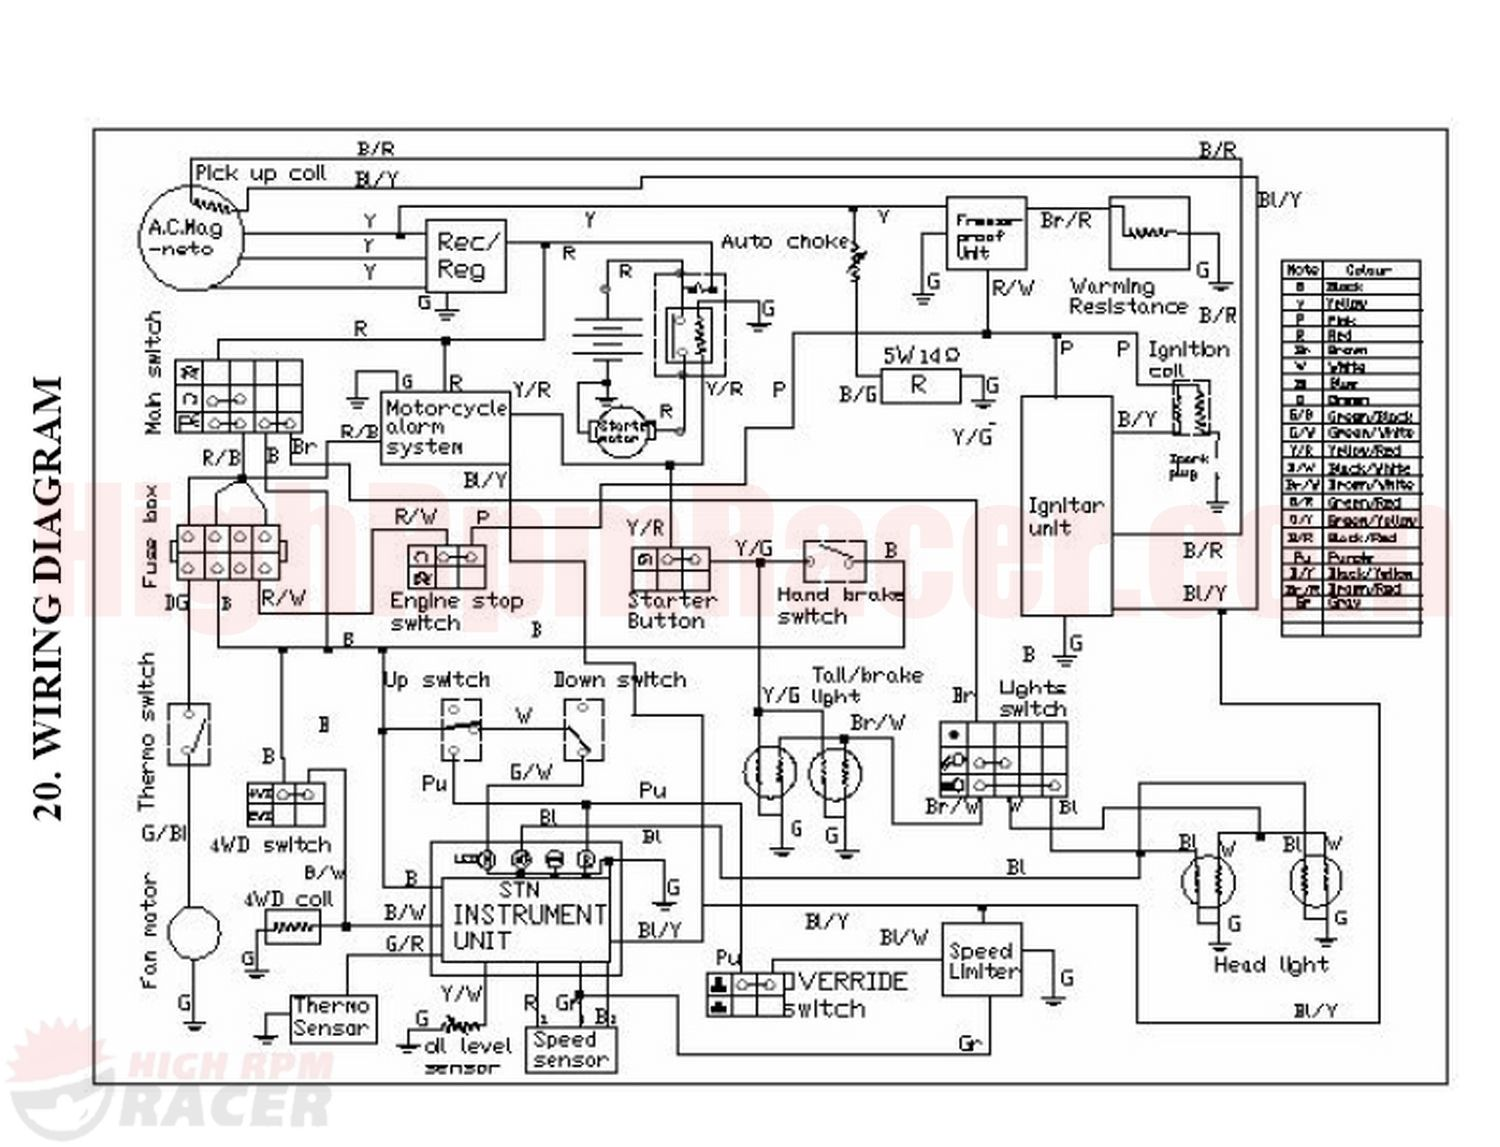 Linhai 50cc Wiring Diagram Trusted Diagrams Dirt Bike Wire Center U2022 Rh 144 202 34 195 Jonway Yy250t